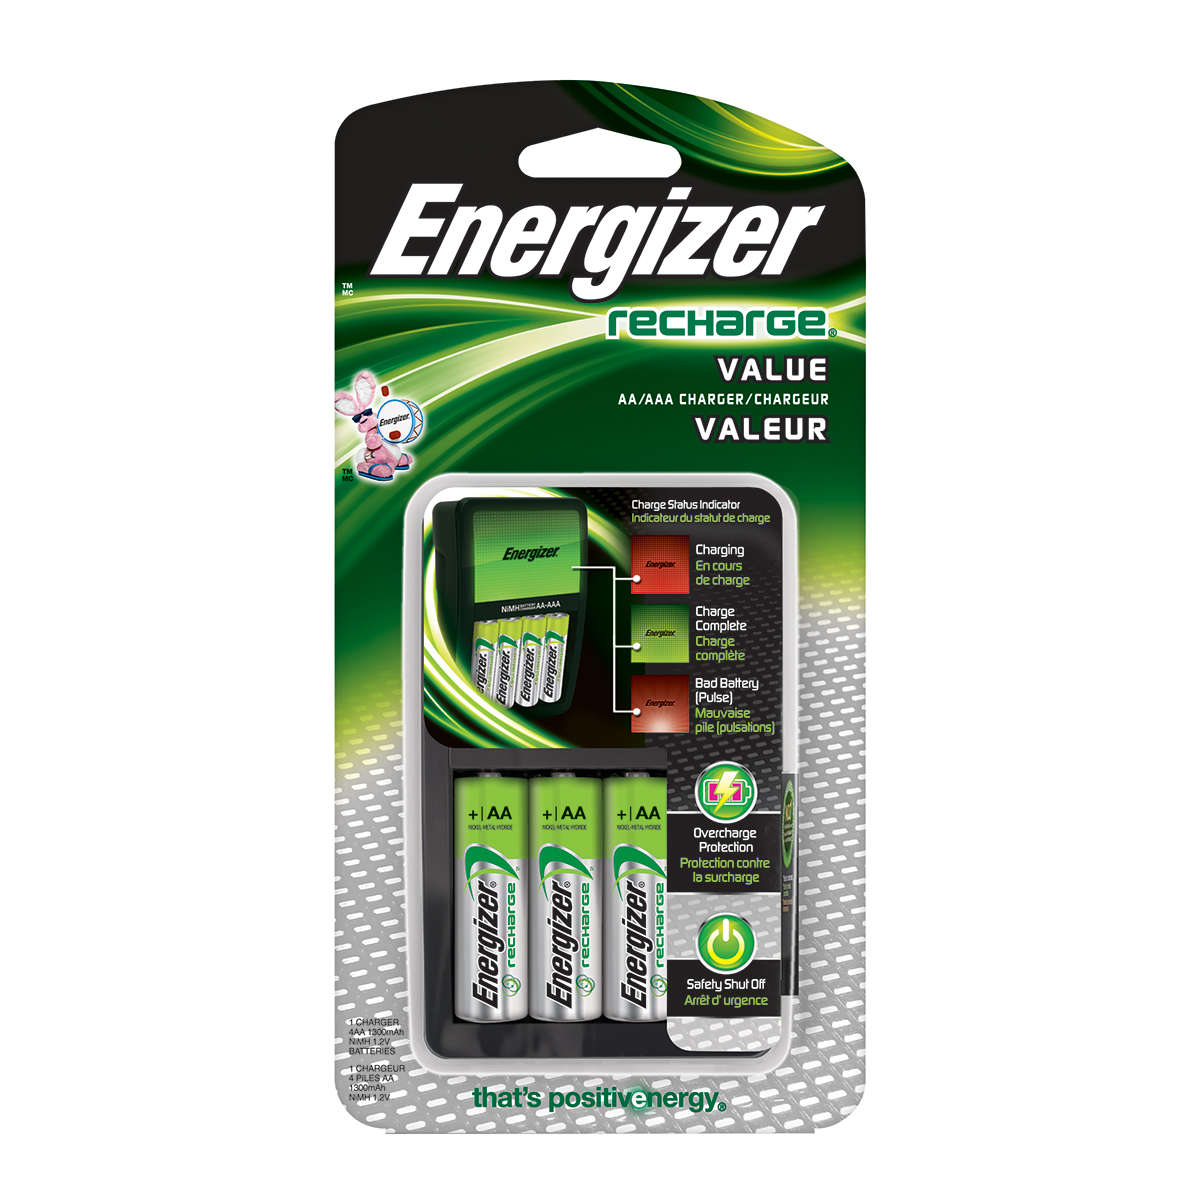 Energizer Recharge Value Charger